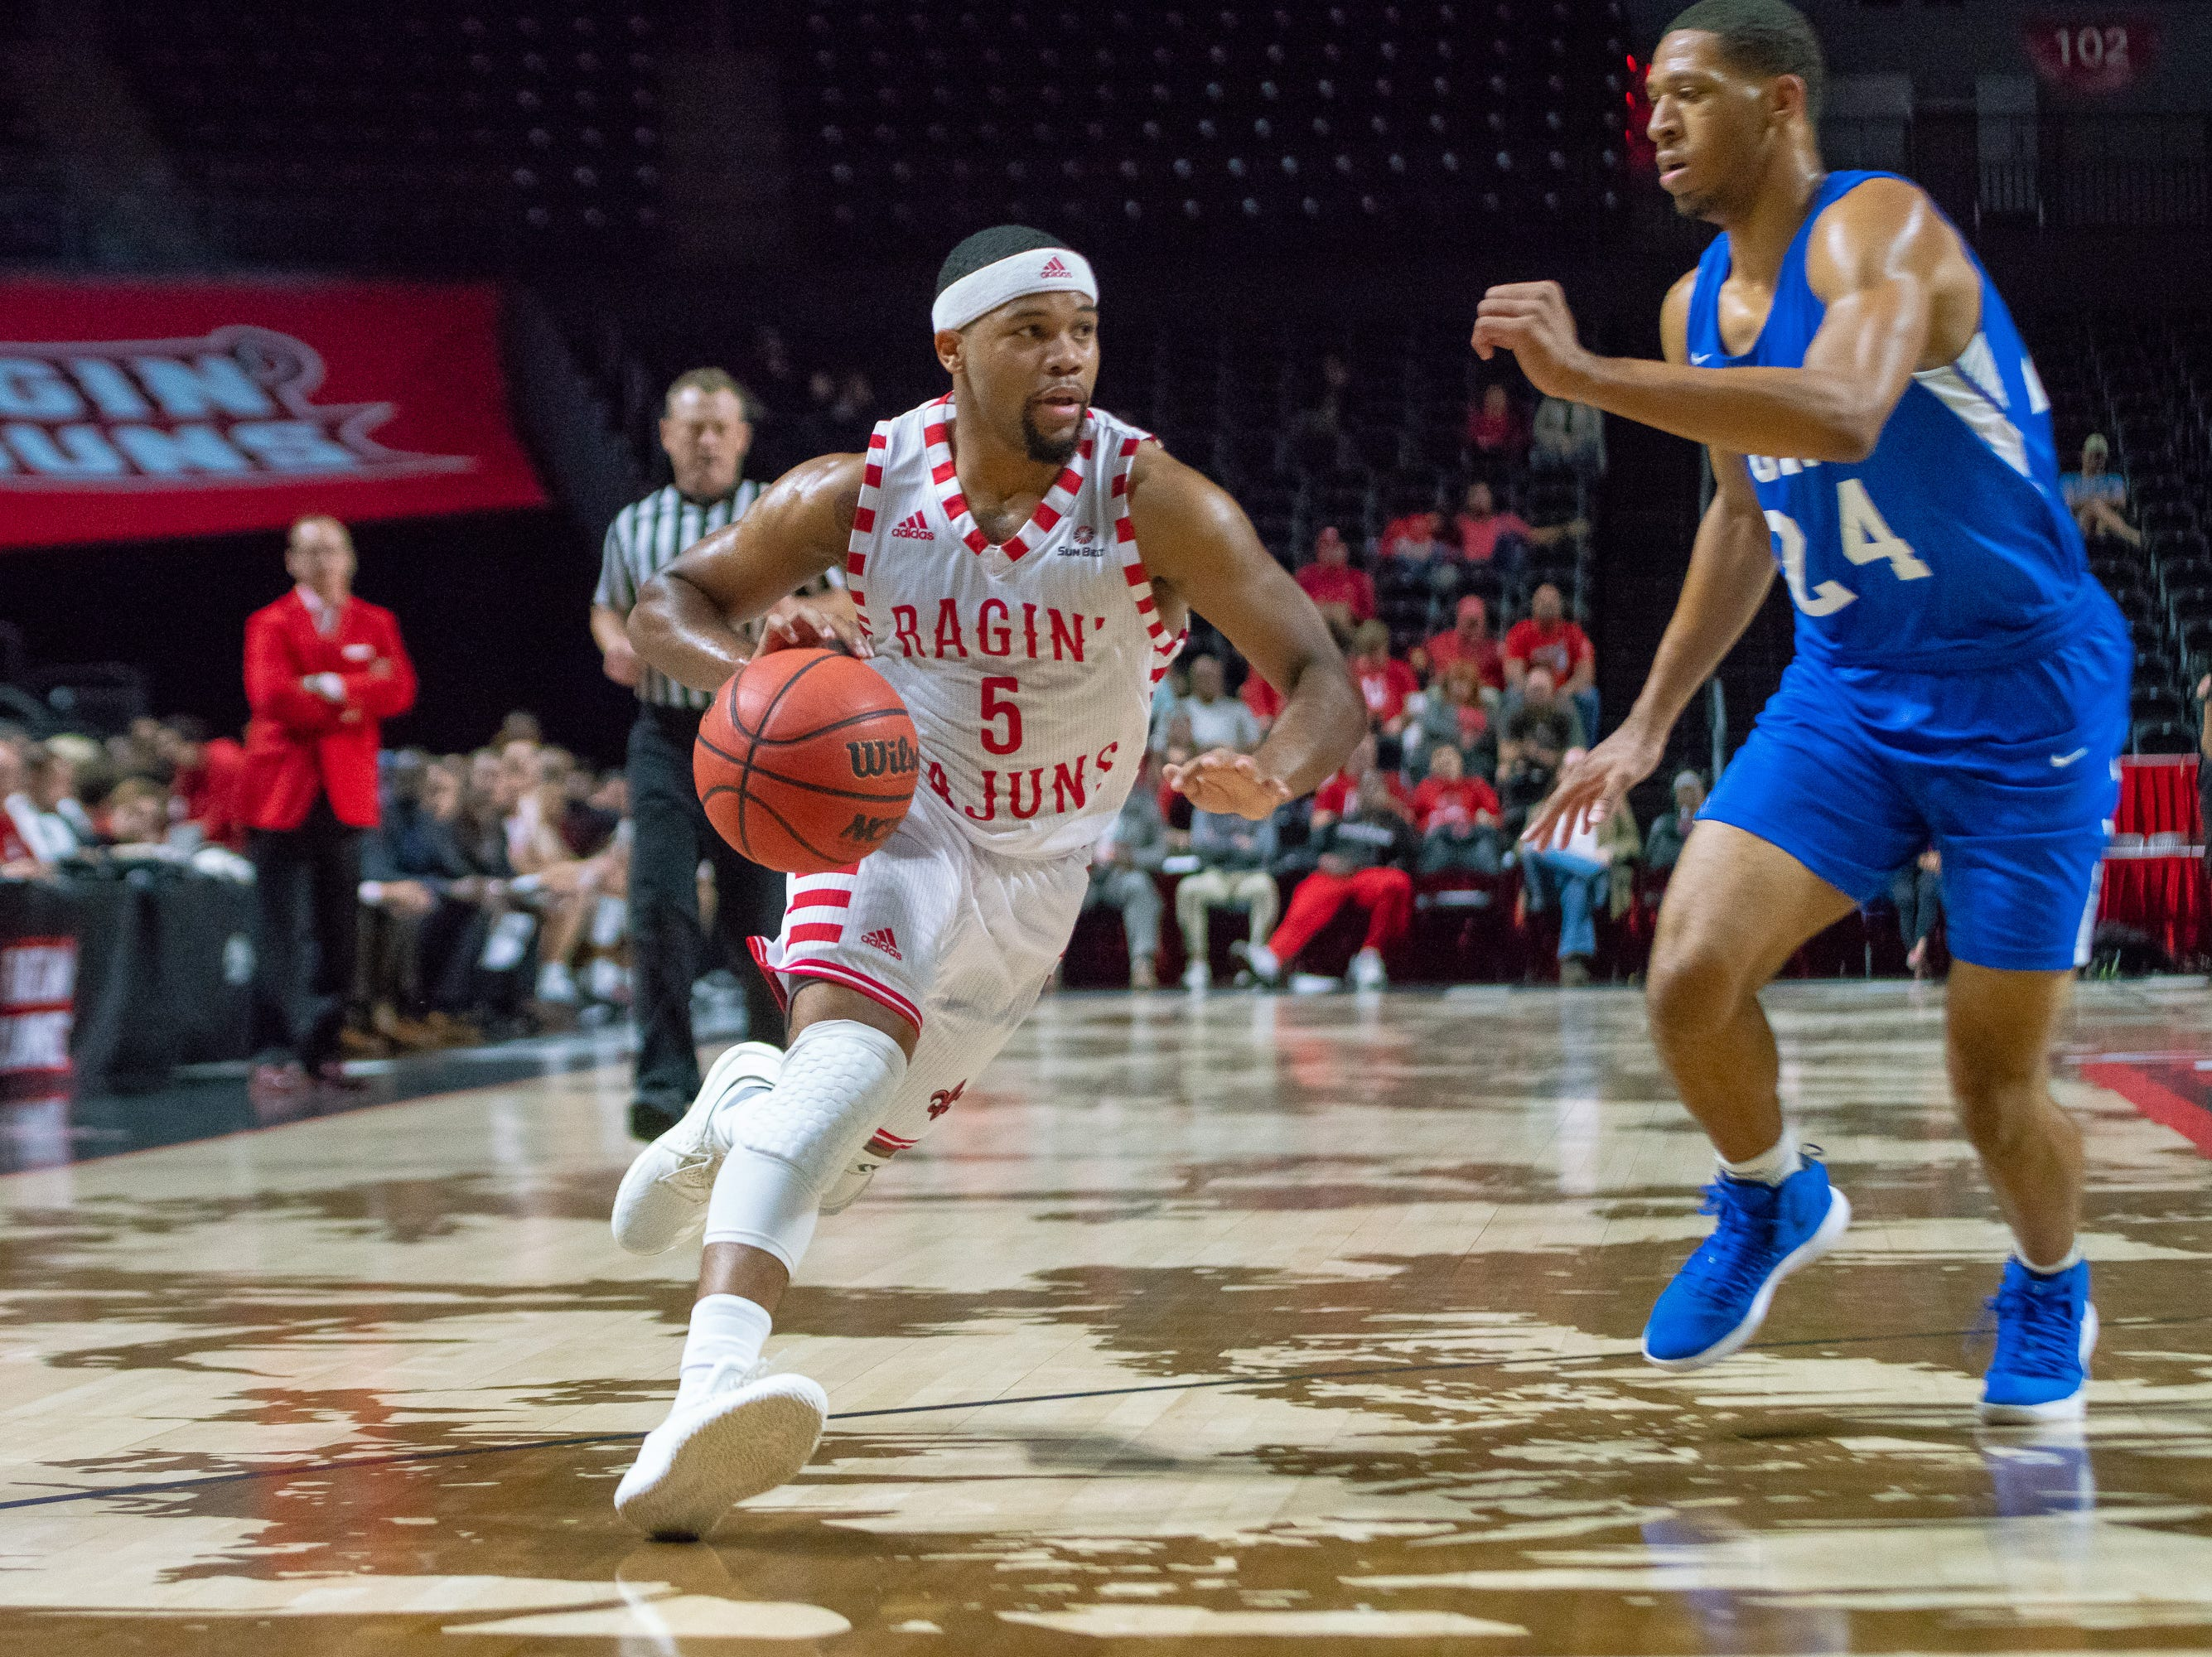 UL's Trajan Wesley sprints to the goal as the Ragin' Cajuns take on the University of the Virgin Islands Buccaneers at the Cajundome on Nov. 6, 2018.